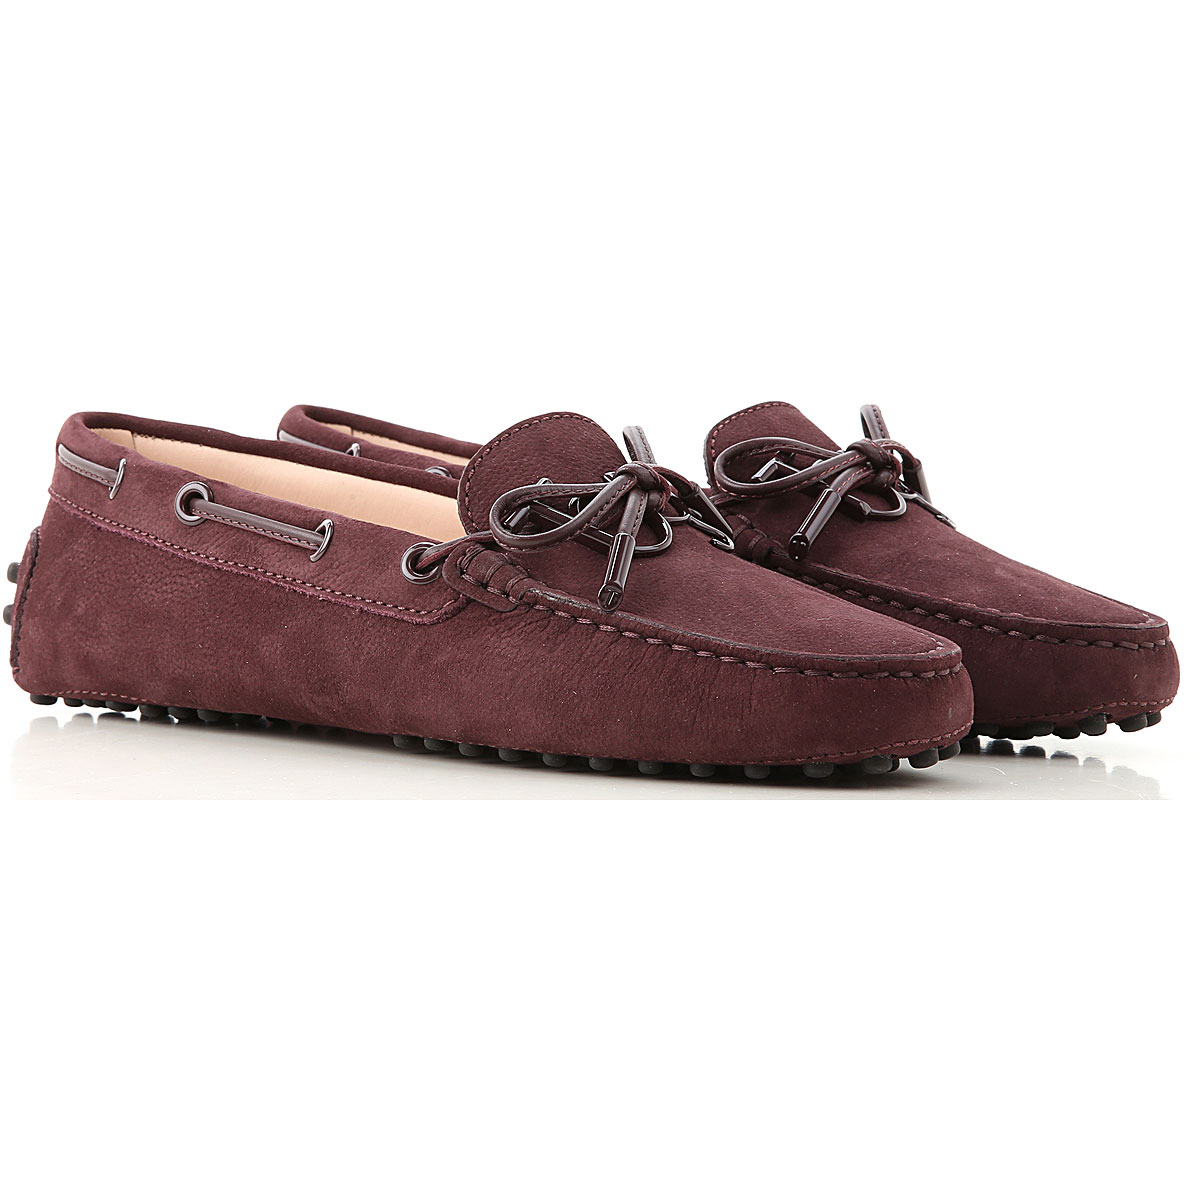 Tods Loafers for Women Wine USA - GOOFASH